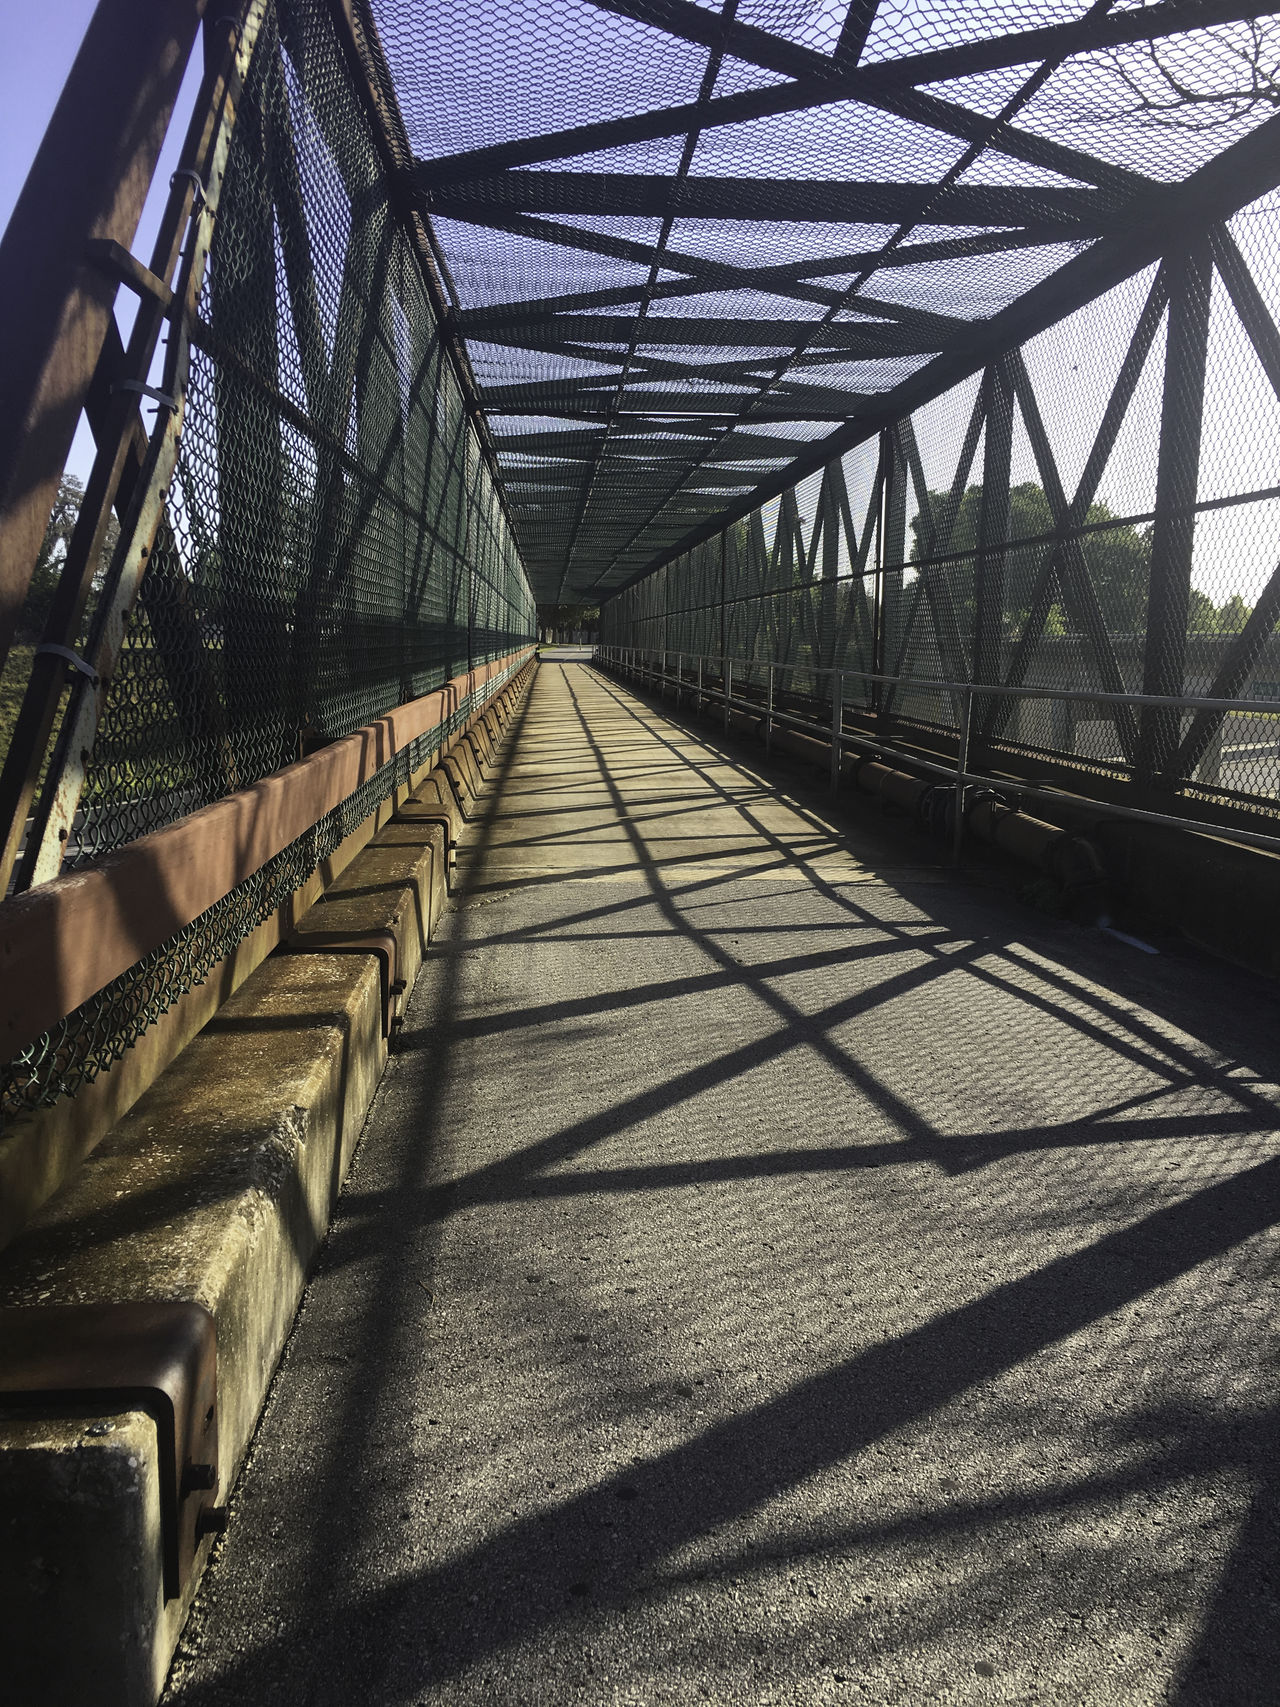 Looking down the rail Architecture Bridge - Man Made Structure Built Structure City Connection Day Elevated Walkway Footbridge Lines No People Outdoors Railing Shadow Sky Staircase The Way Forward